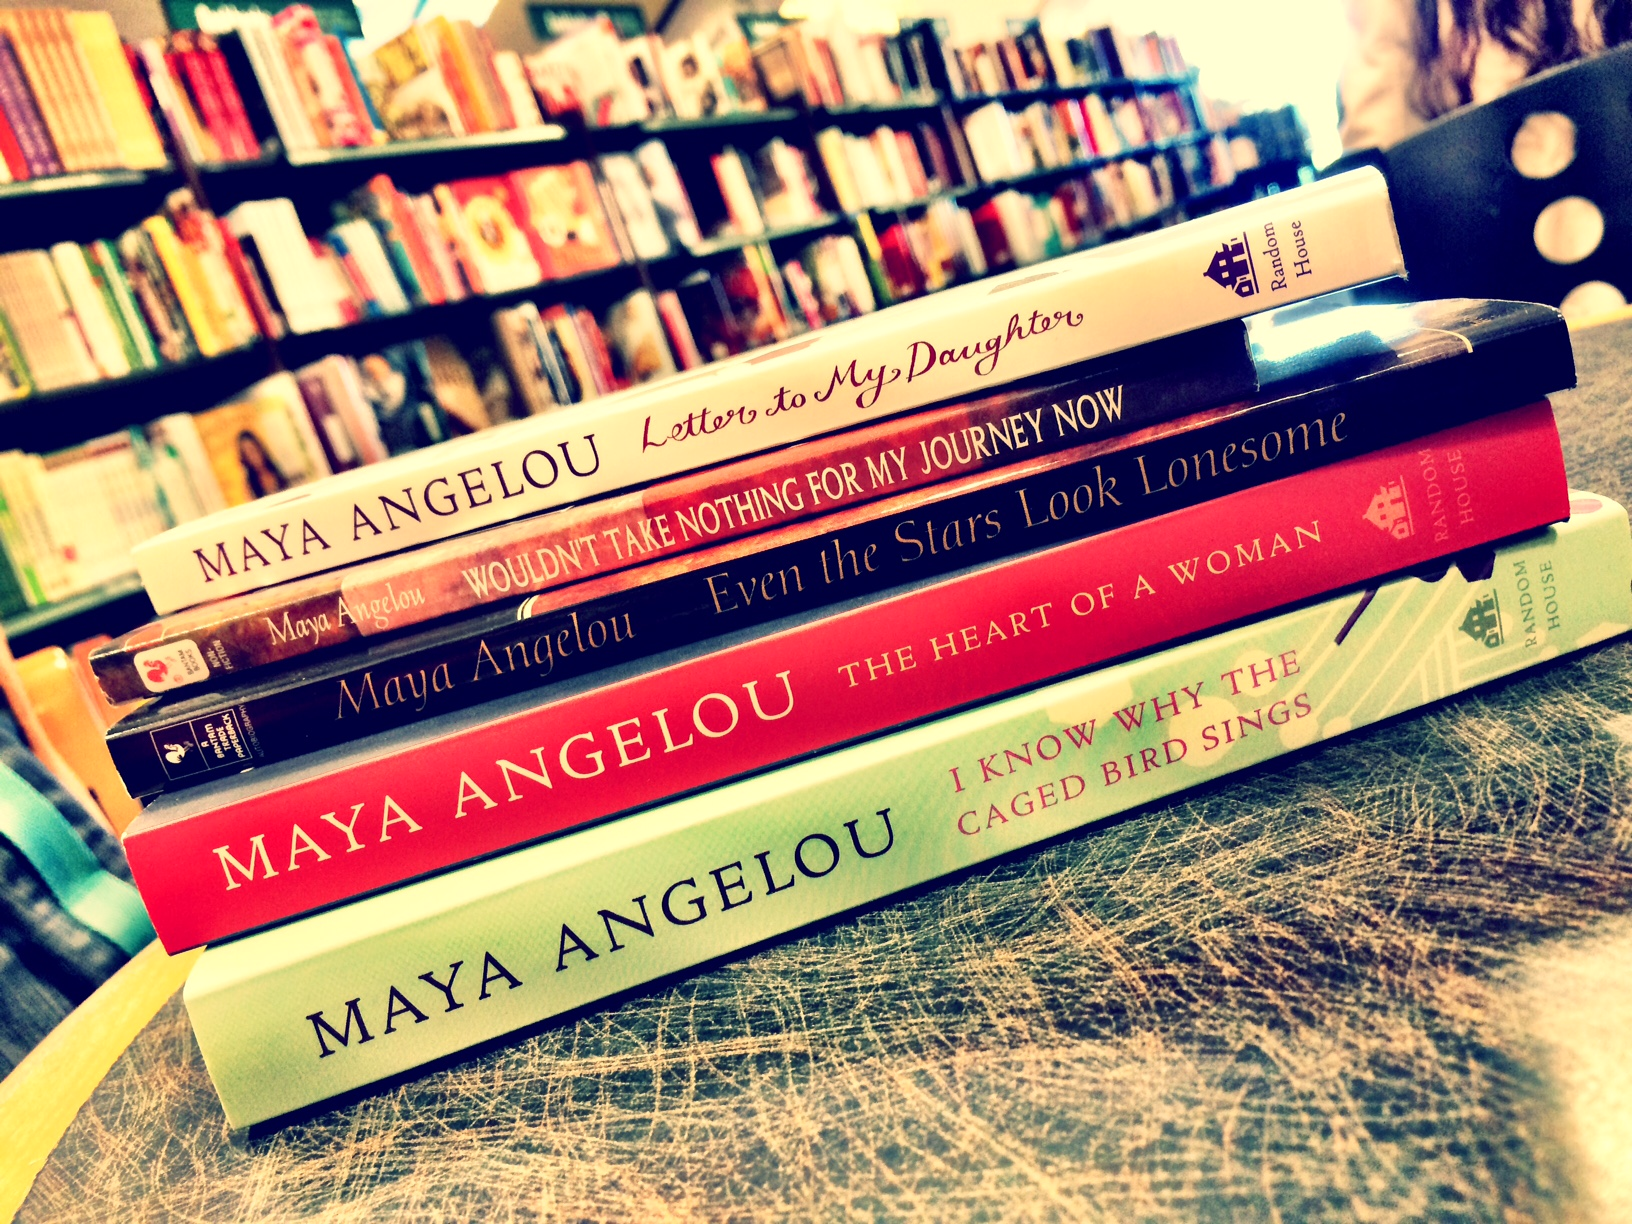 I have read every single book by Maya Angelou ever since I discovered her in 2005 - she taught me what it means to have a voice and let it sing.